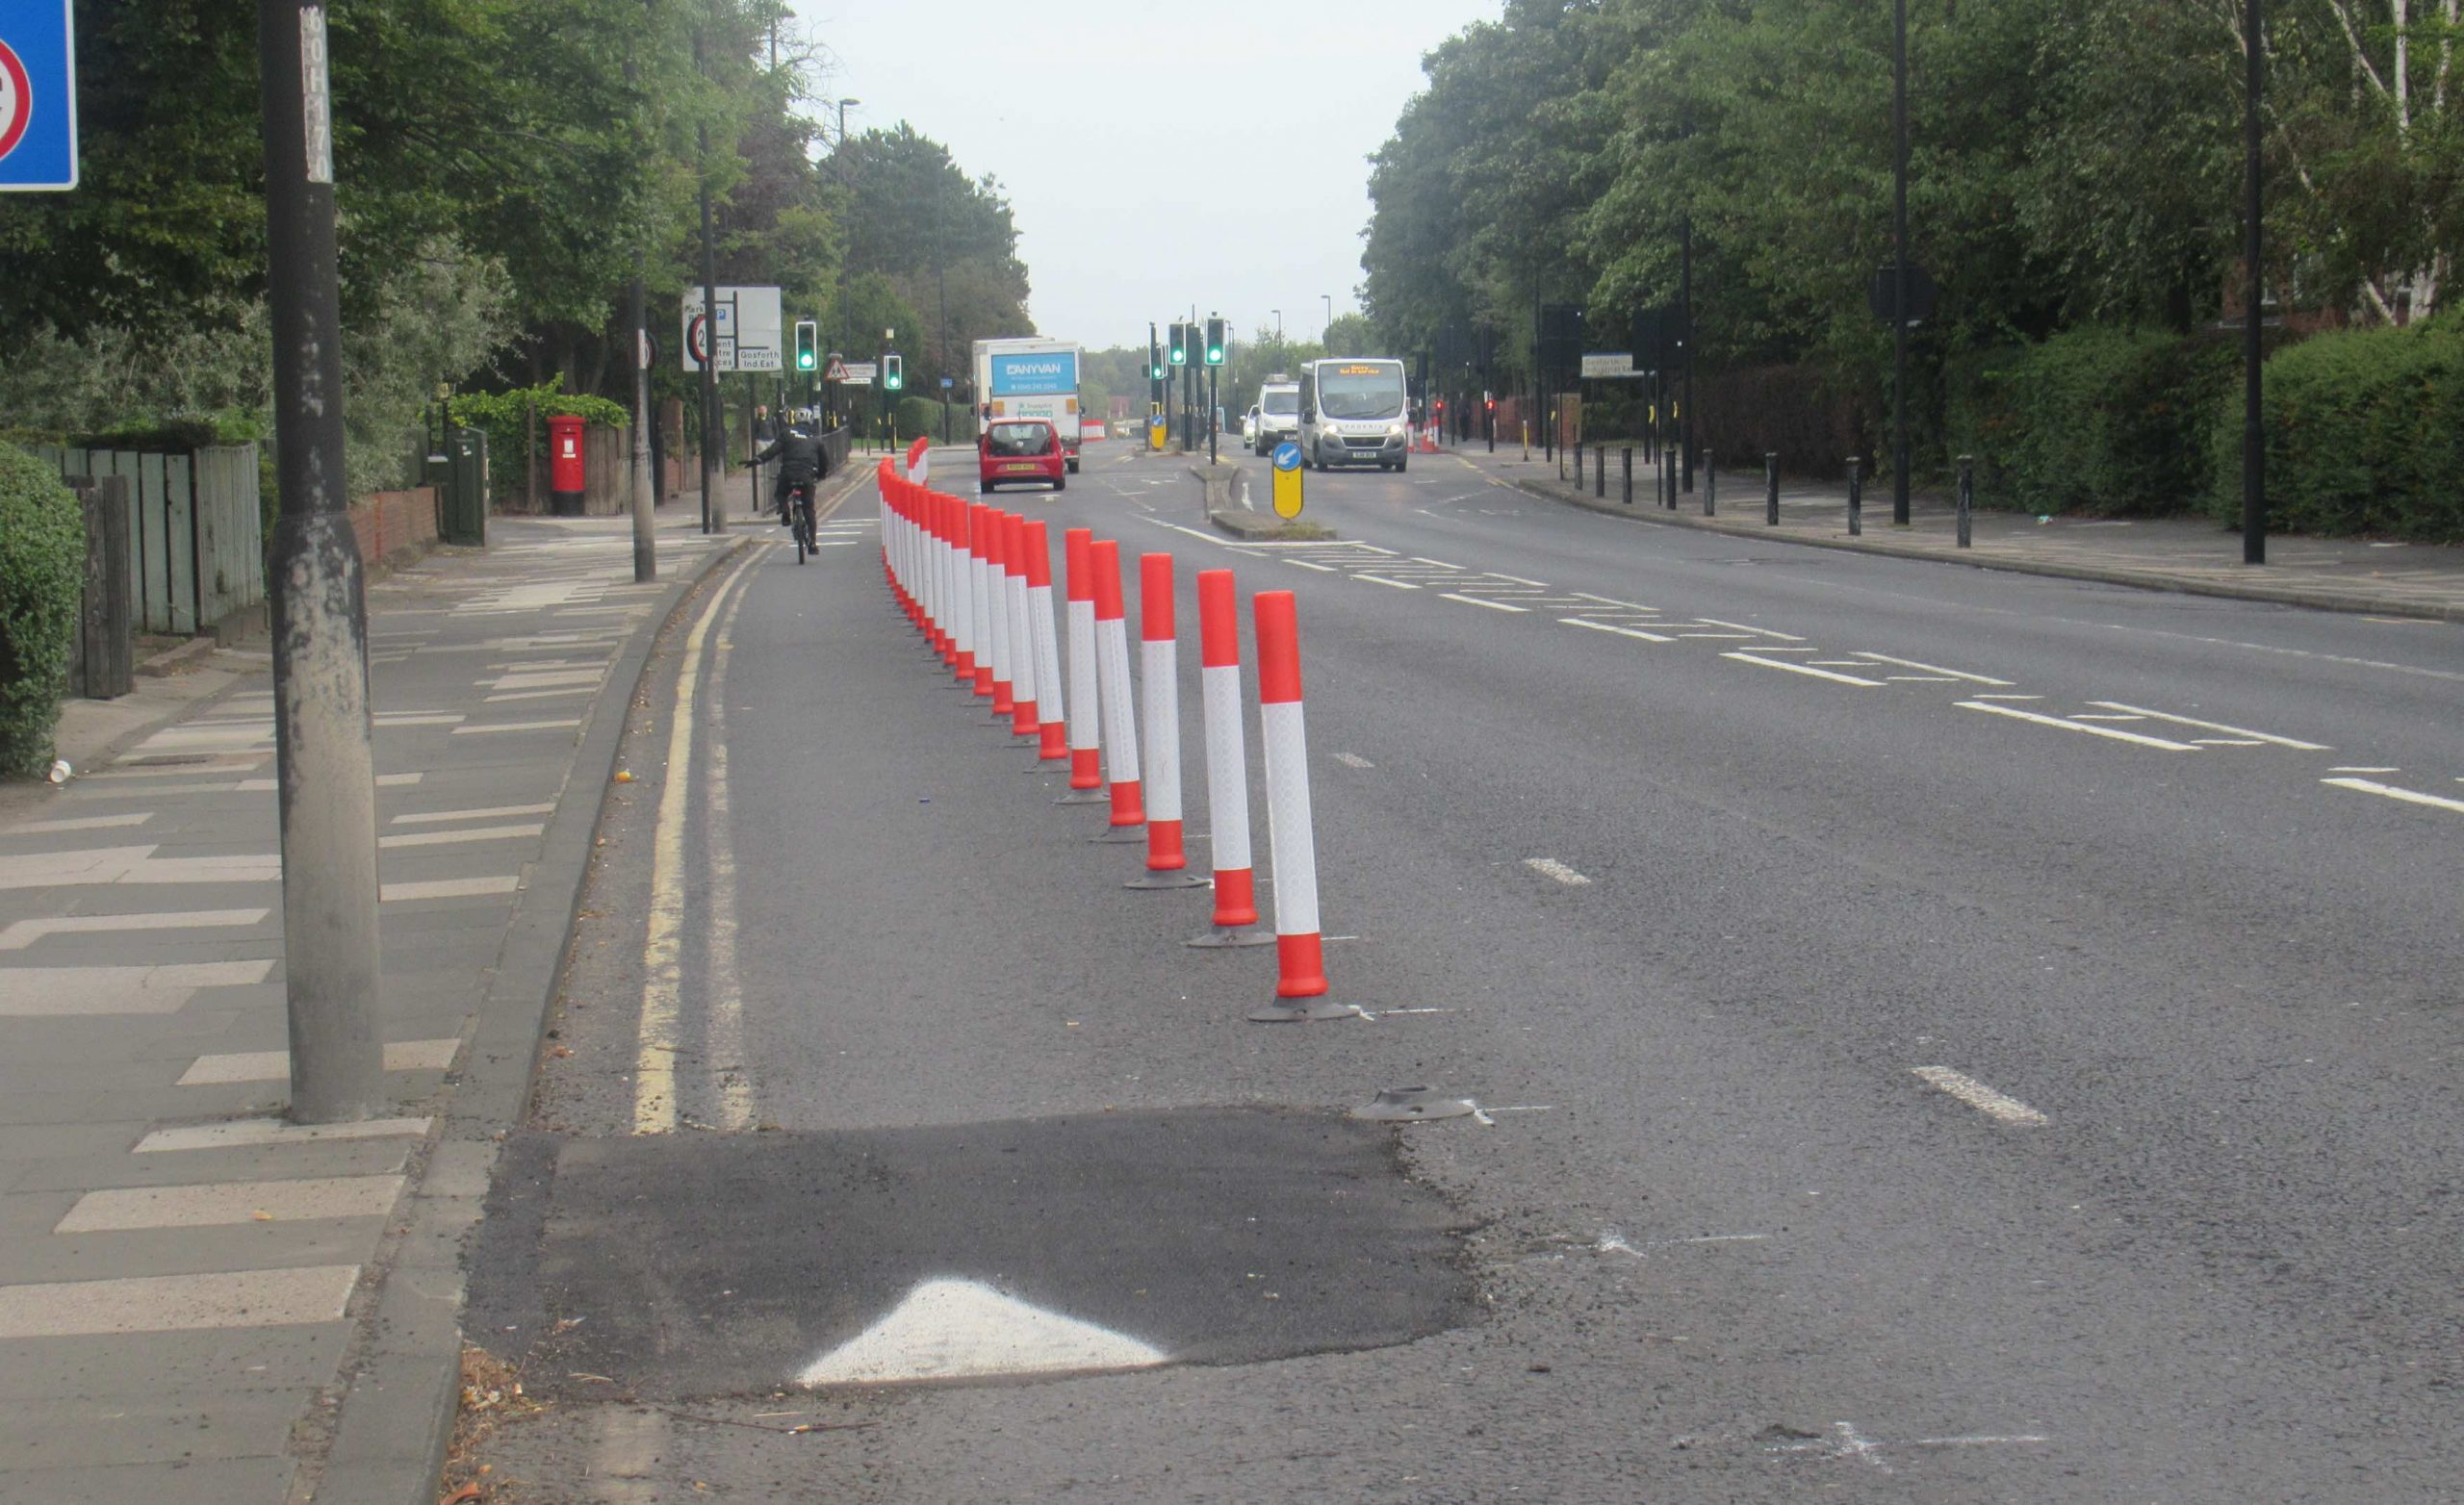 North bound cycle lane protected by wands south of Regent Centre